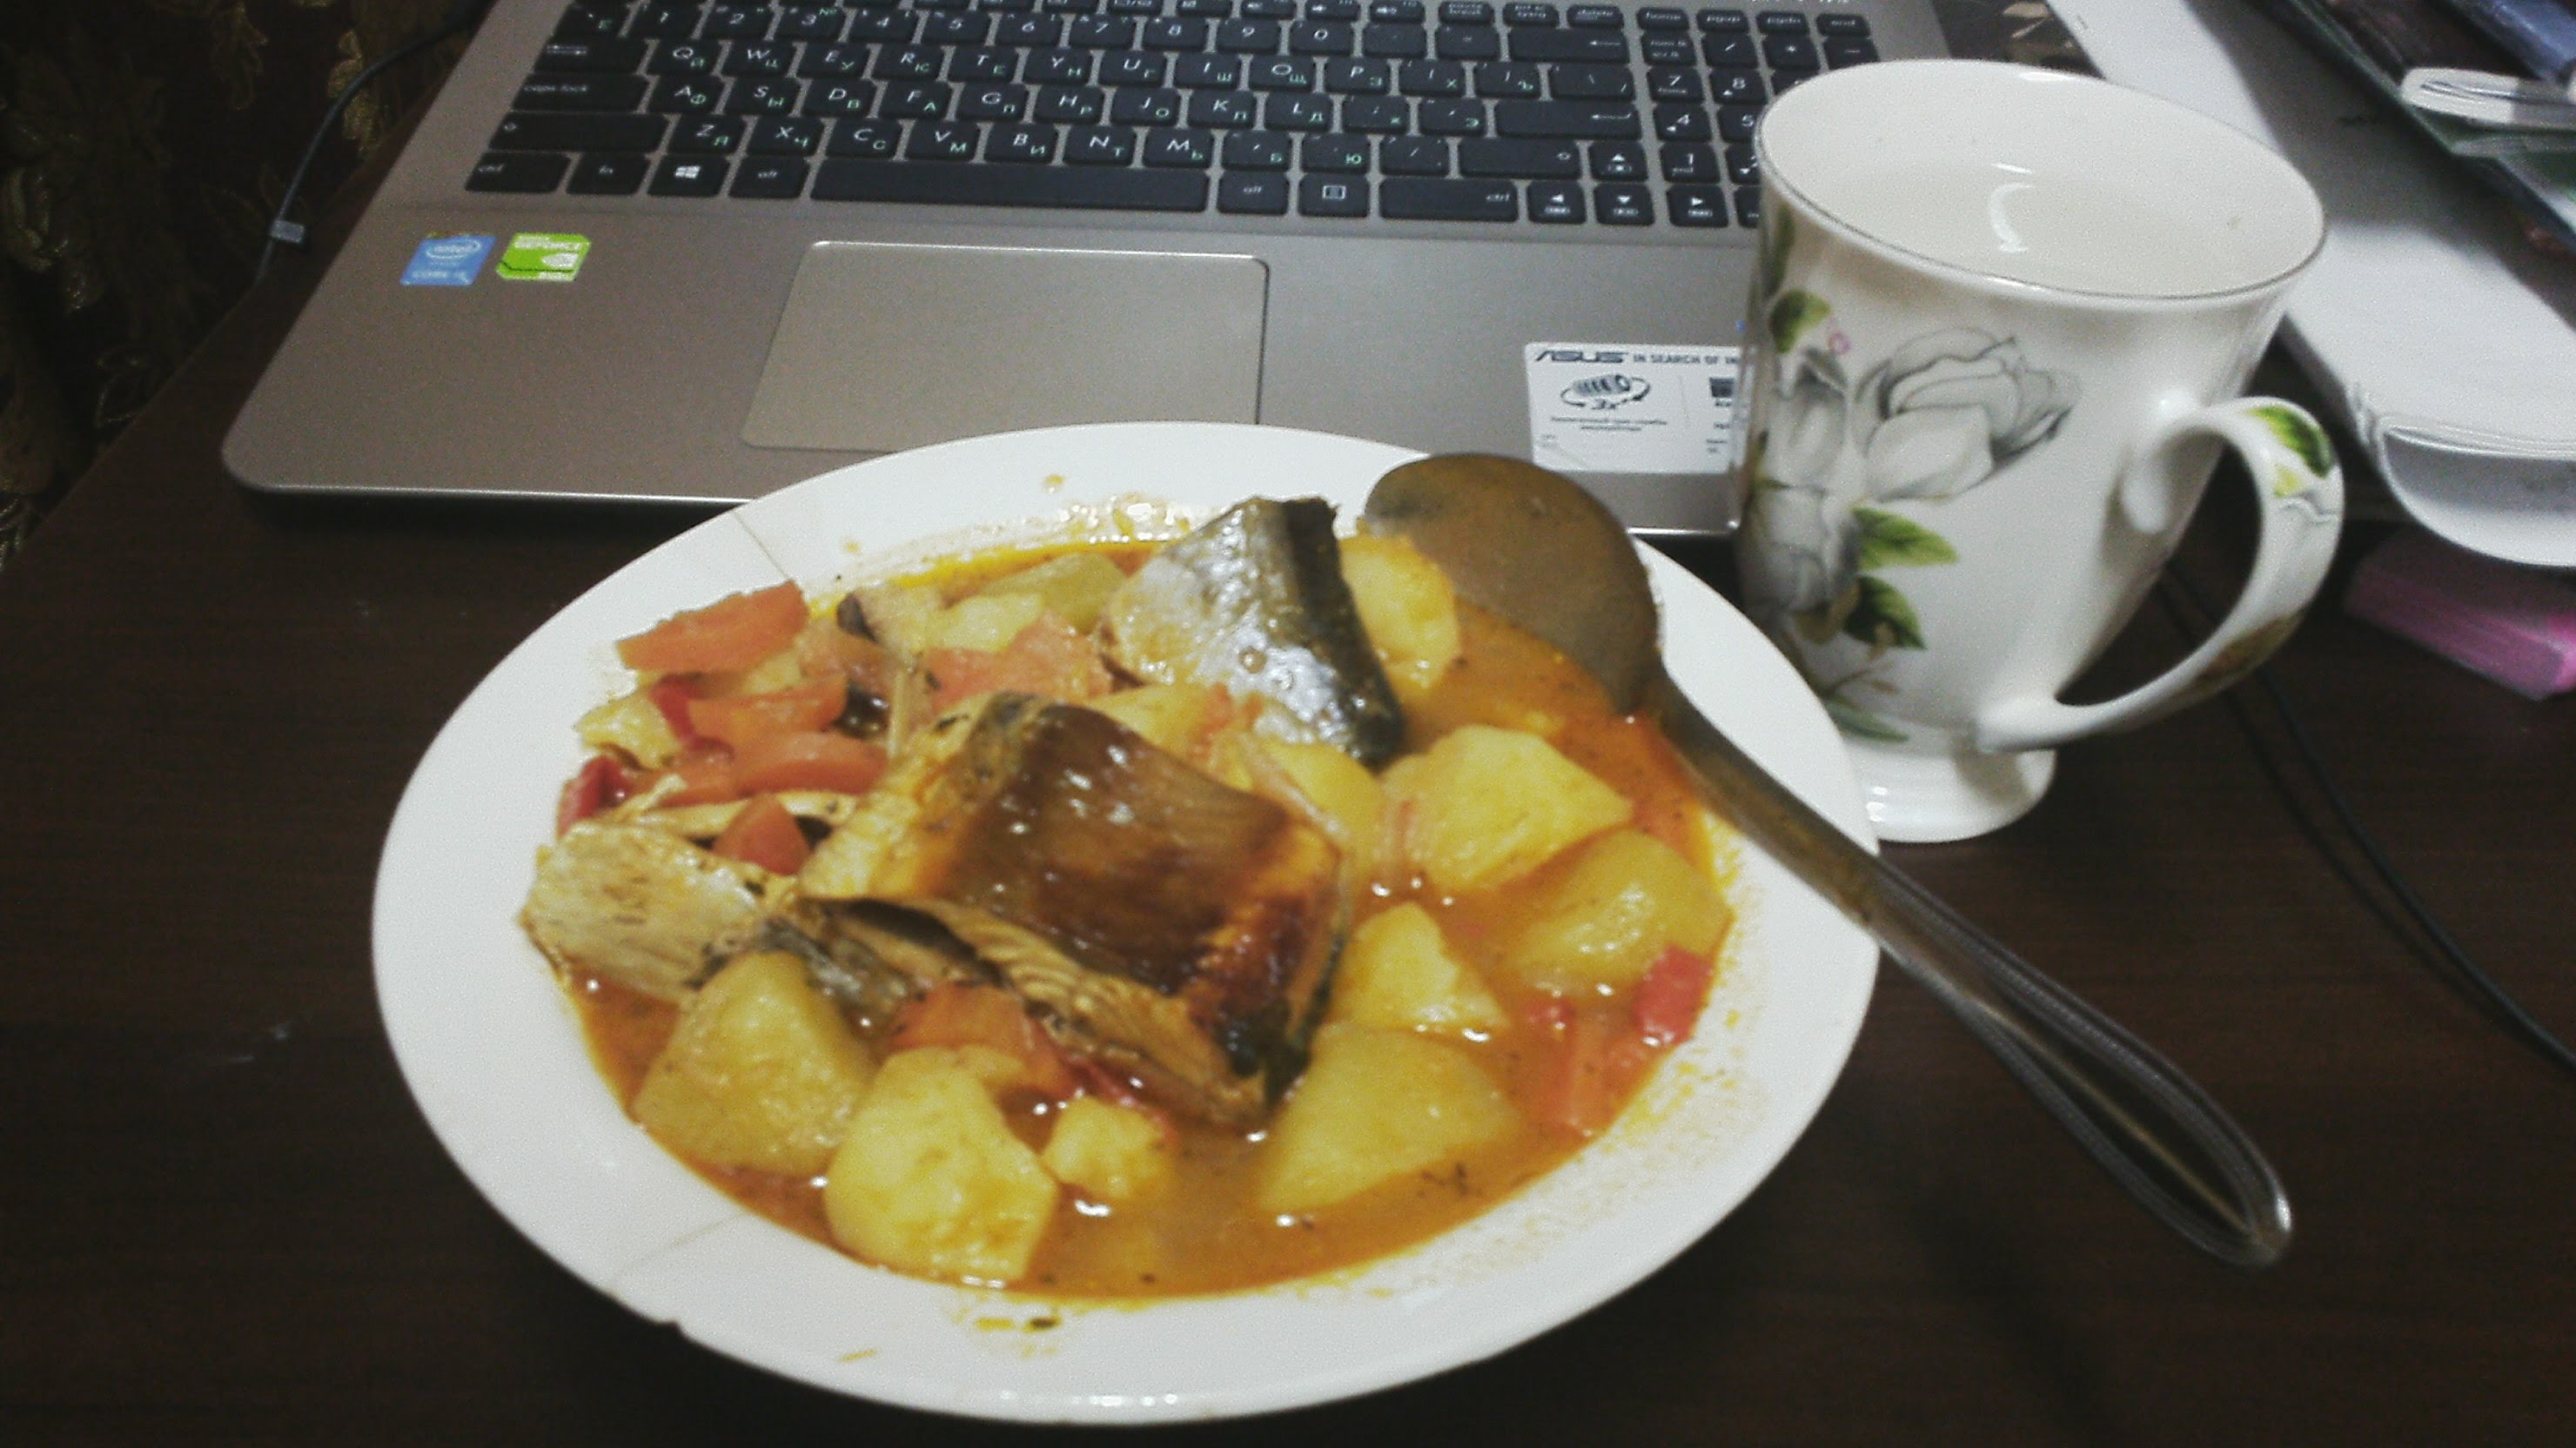 Sonte's Slow Cooker Potato Soup Abdullahi